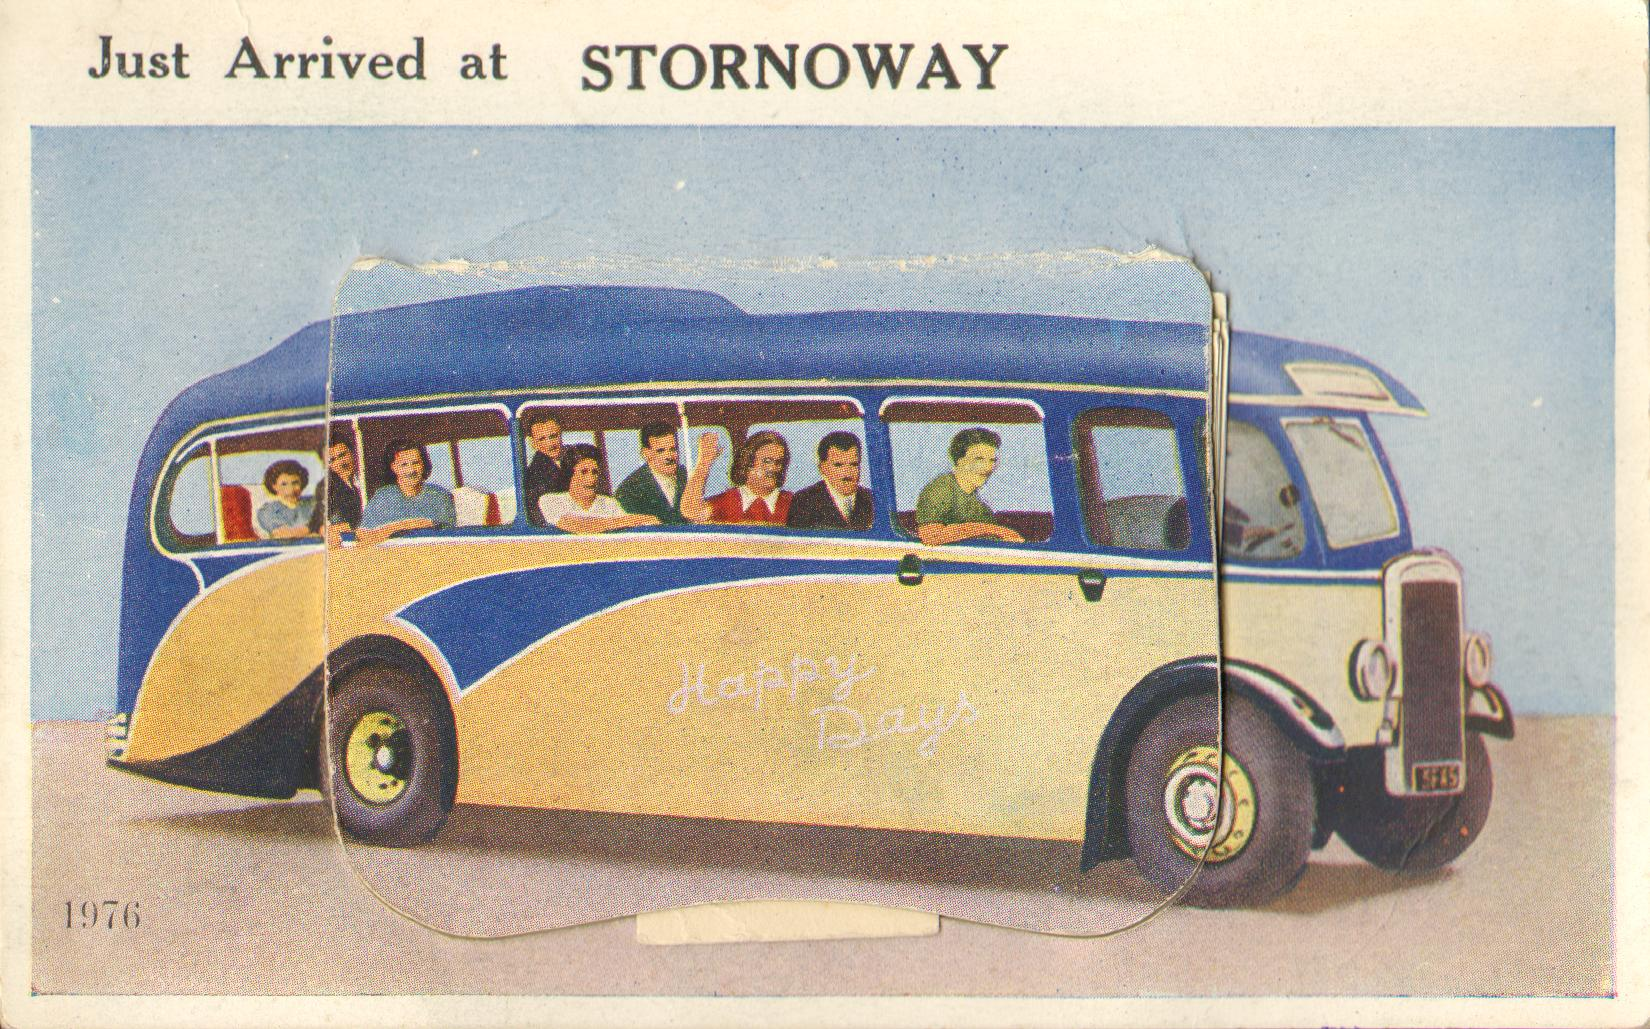 Just arrived at Stornoway postcard